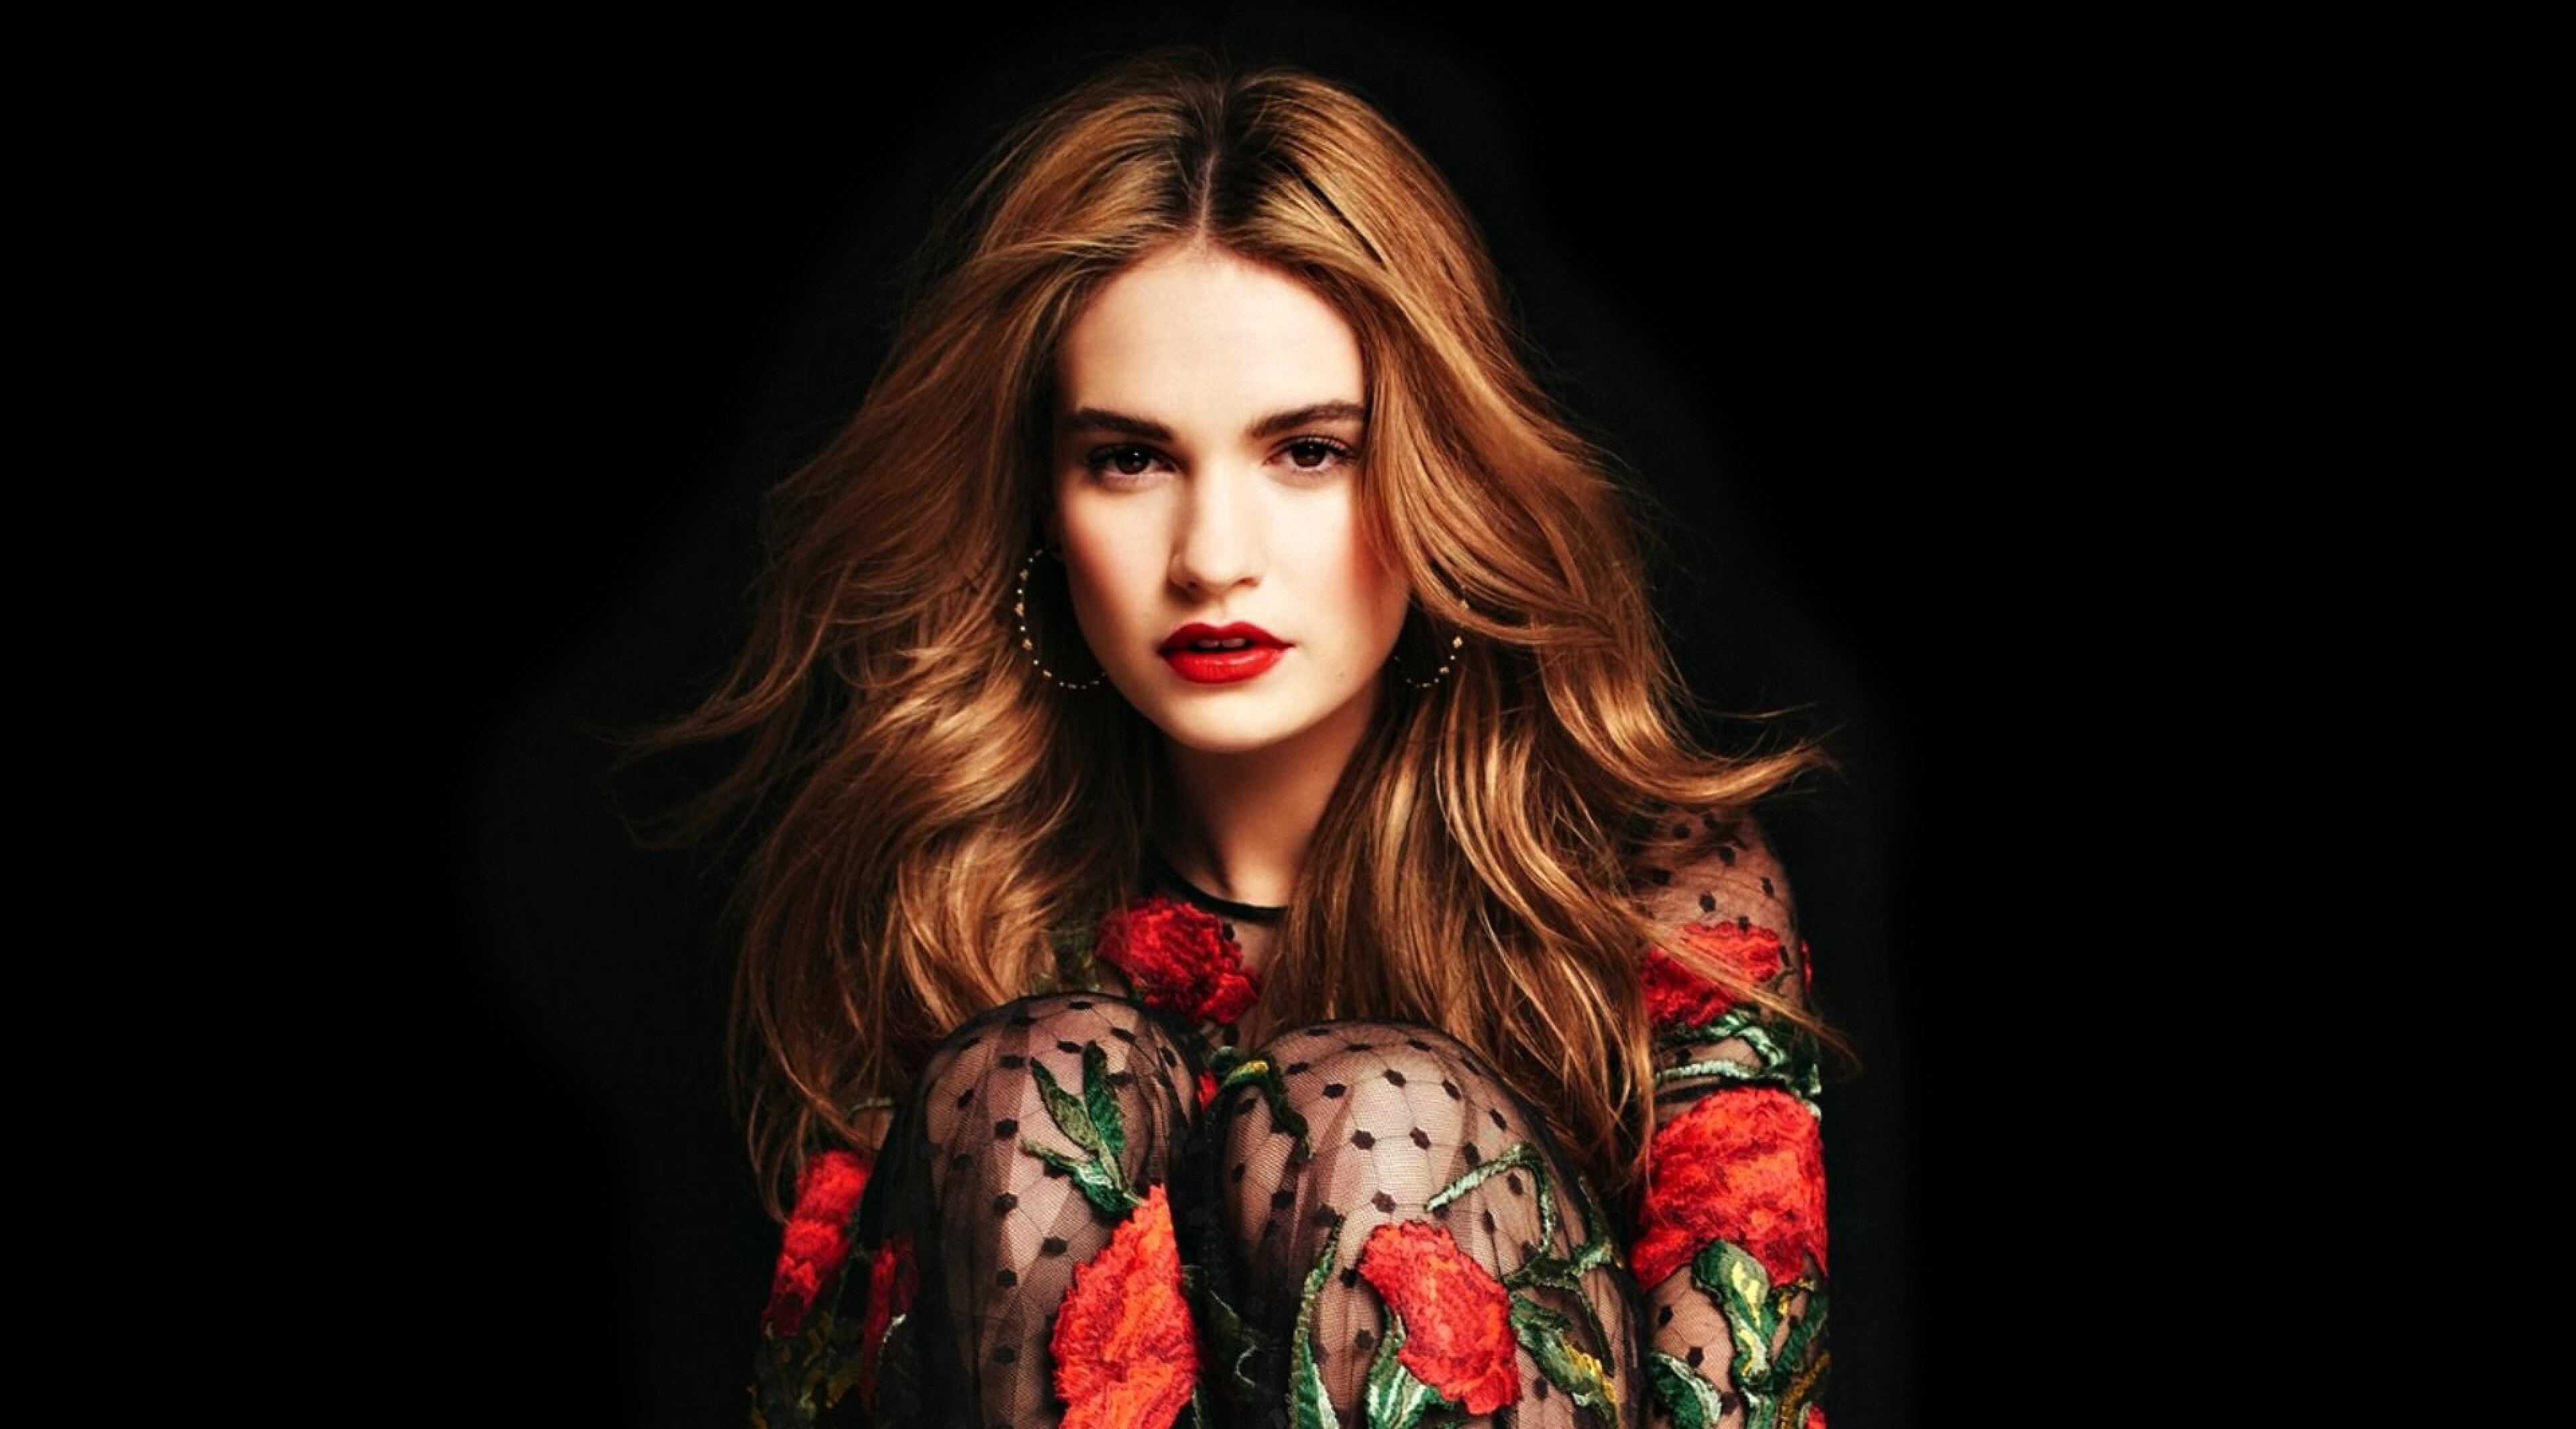 3840x2130 - Lily James Wallpapers 29